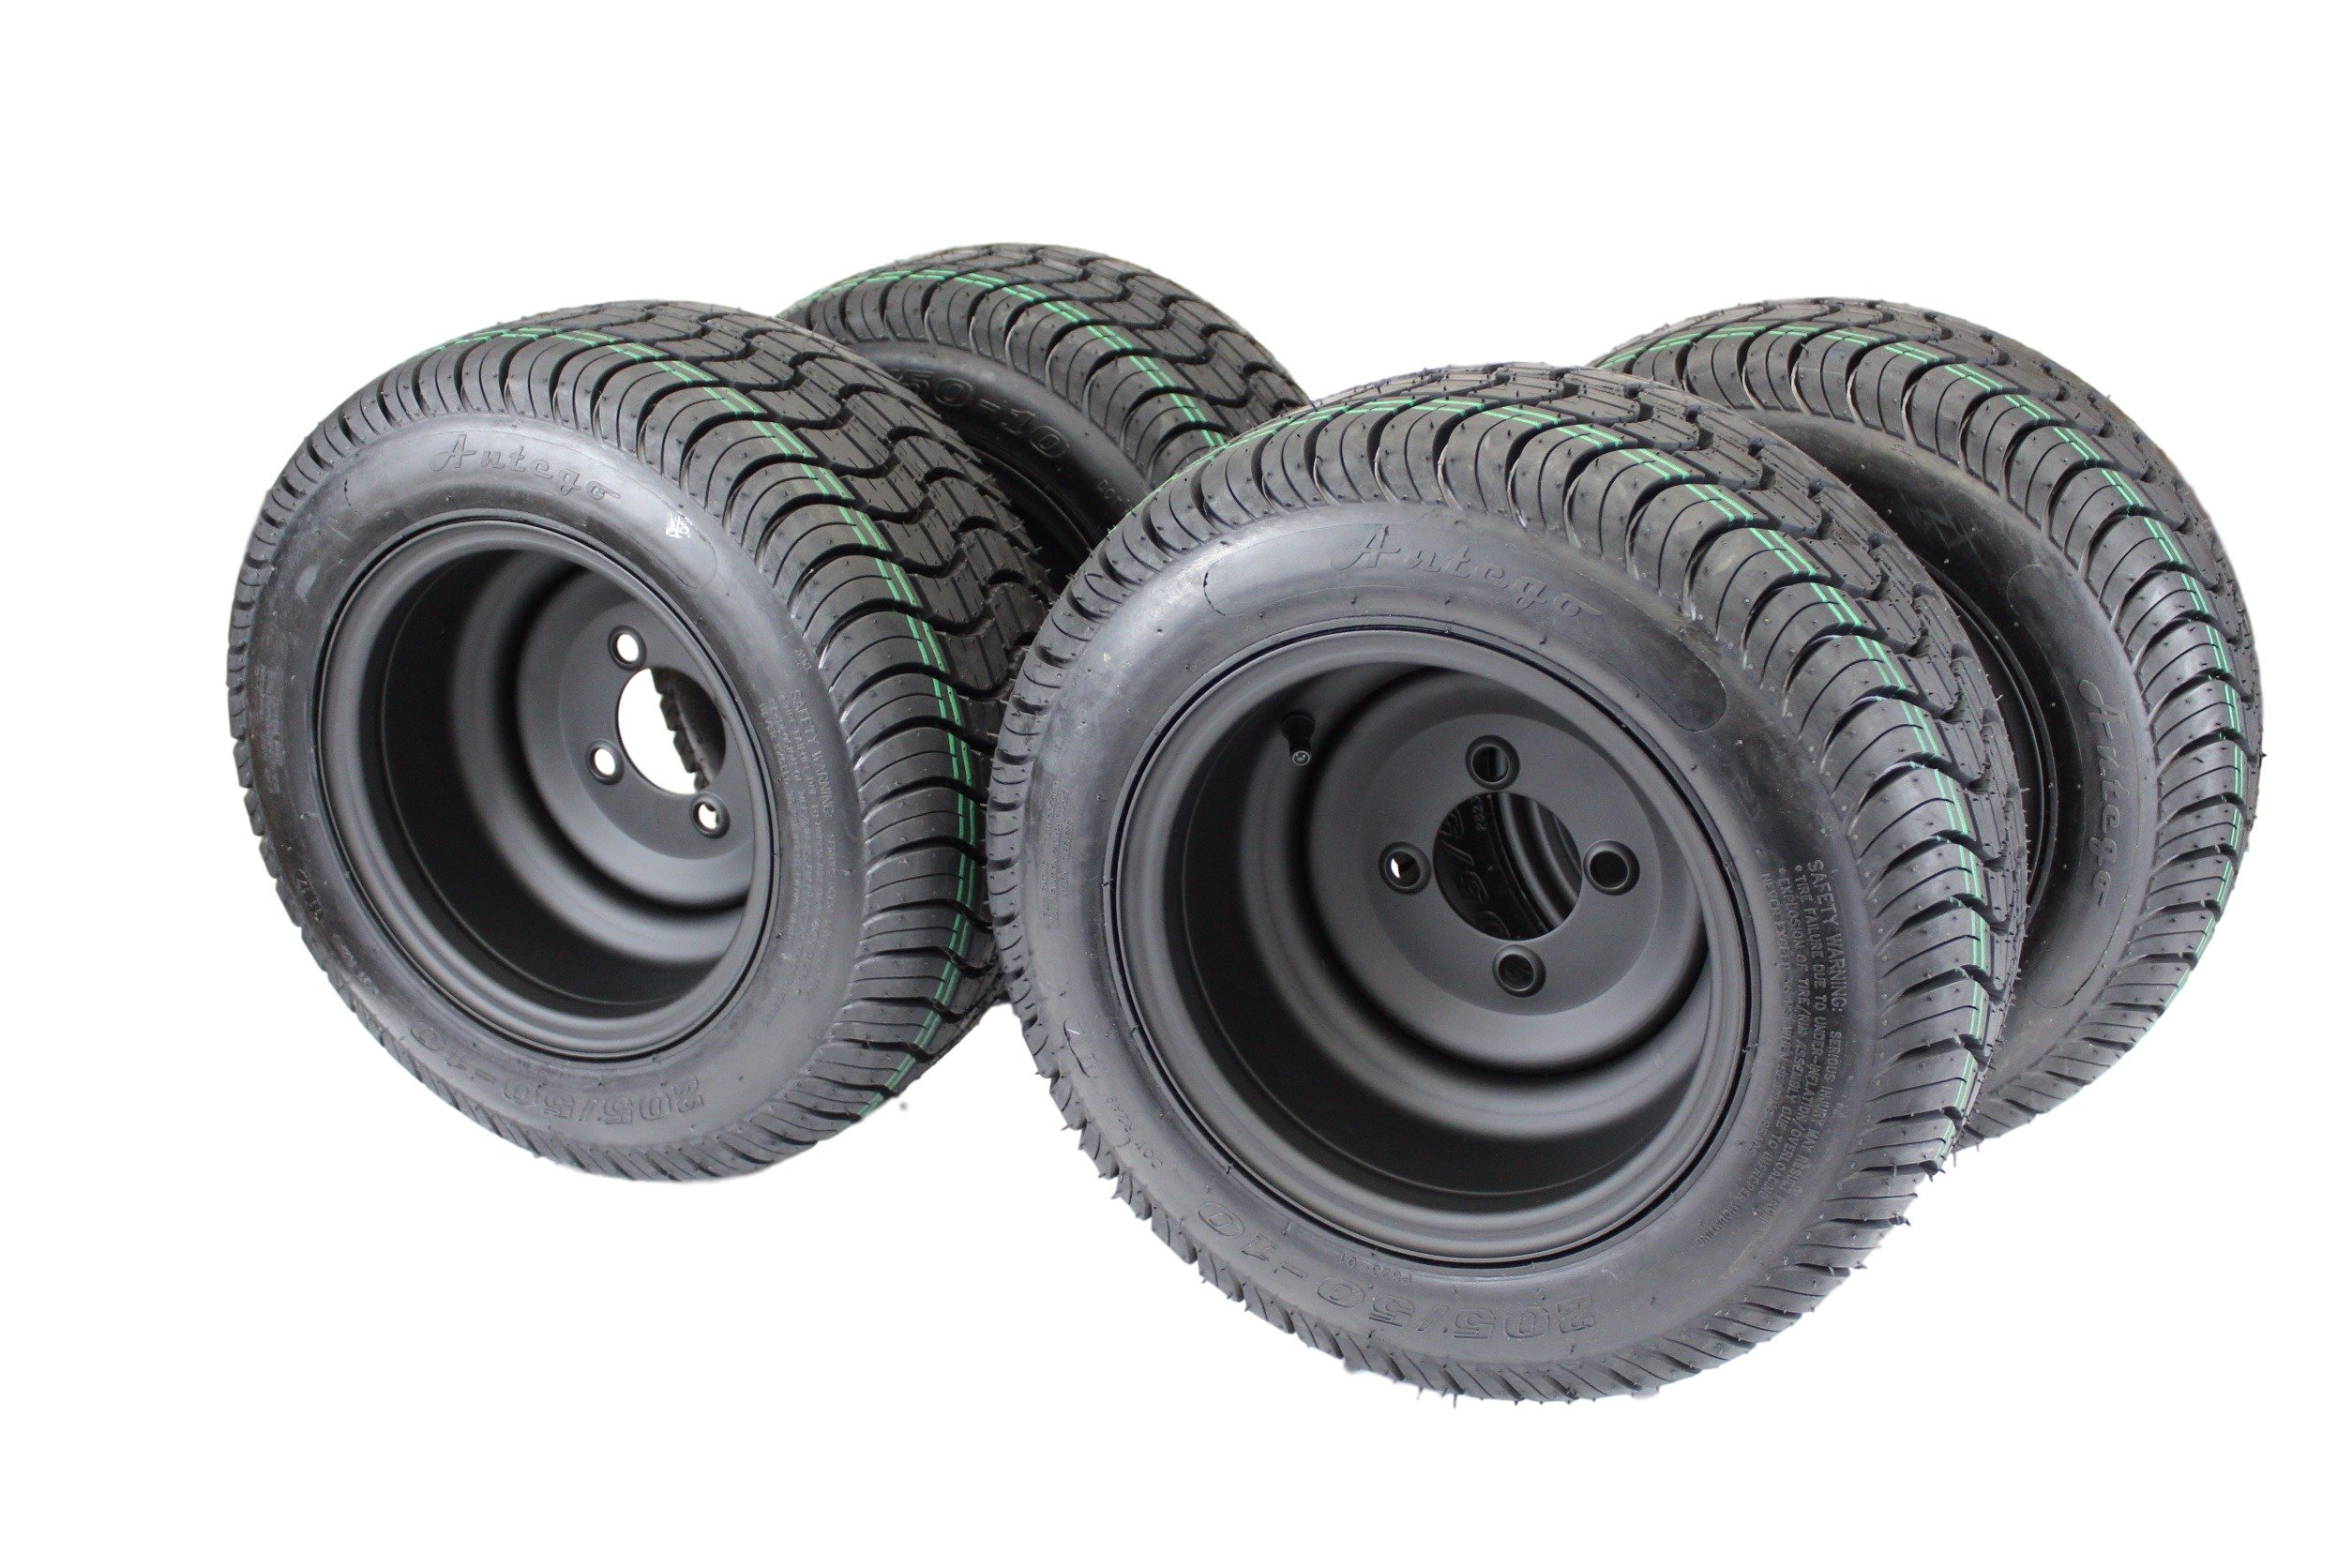 205/50-10 with 10x7 Matte Black Wheels for Golf Cart (Set of 4)